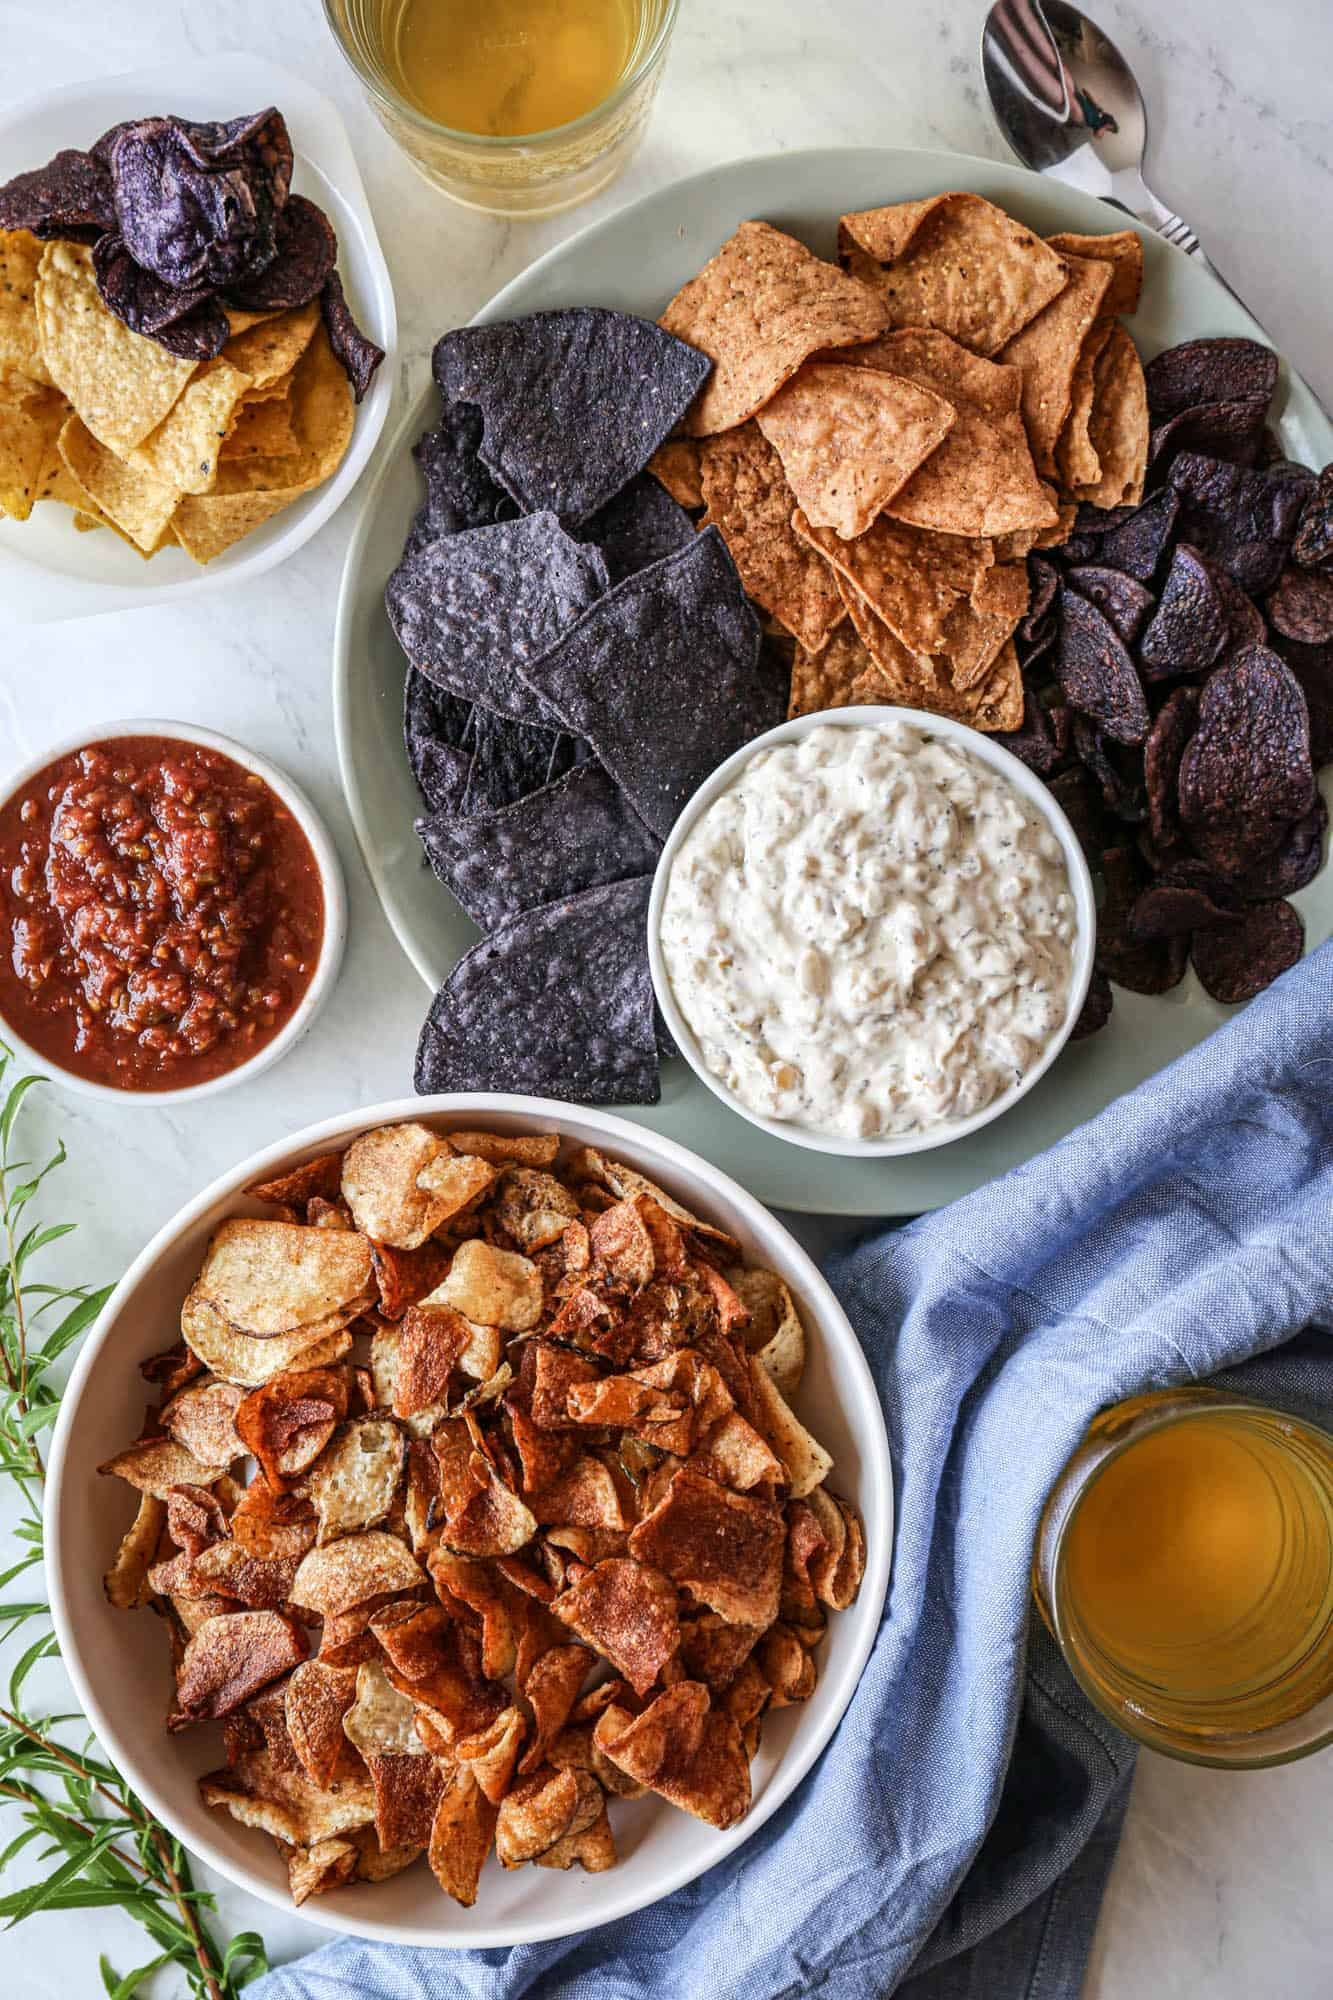 a bowl of gluten free caramelized onion dip with tortilla and potato chips